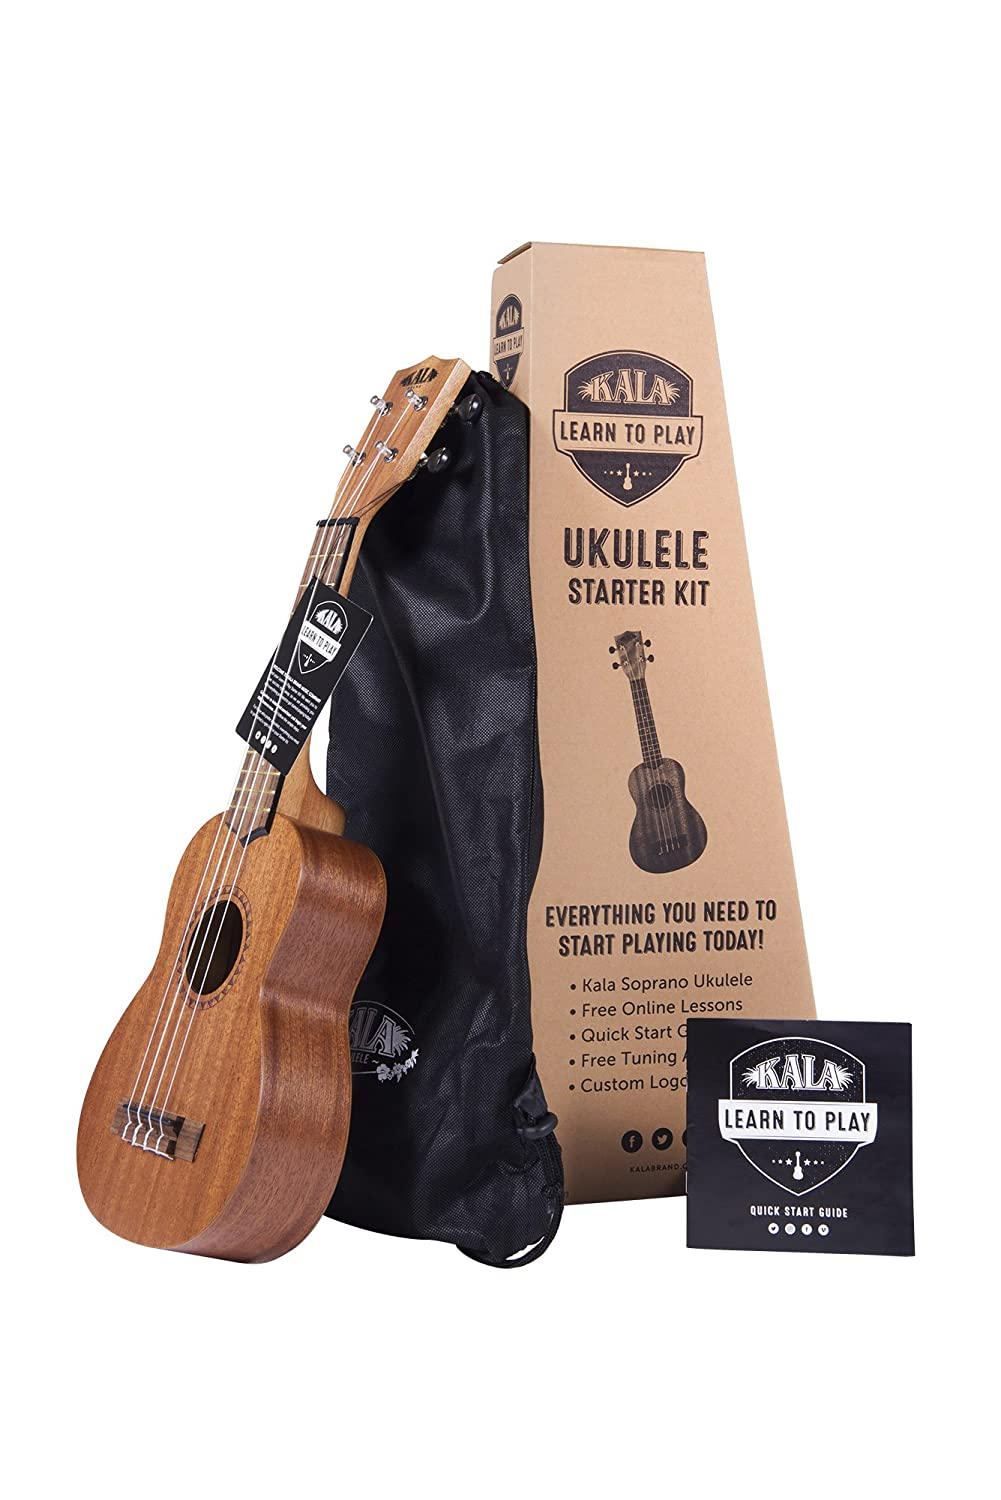 Kala Official Learn to Play Ukulele Soprano Starter Kit, Satin Mahogany – Includes online lessons, tuner app, and booklet (KALA-LTP-S)